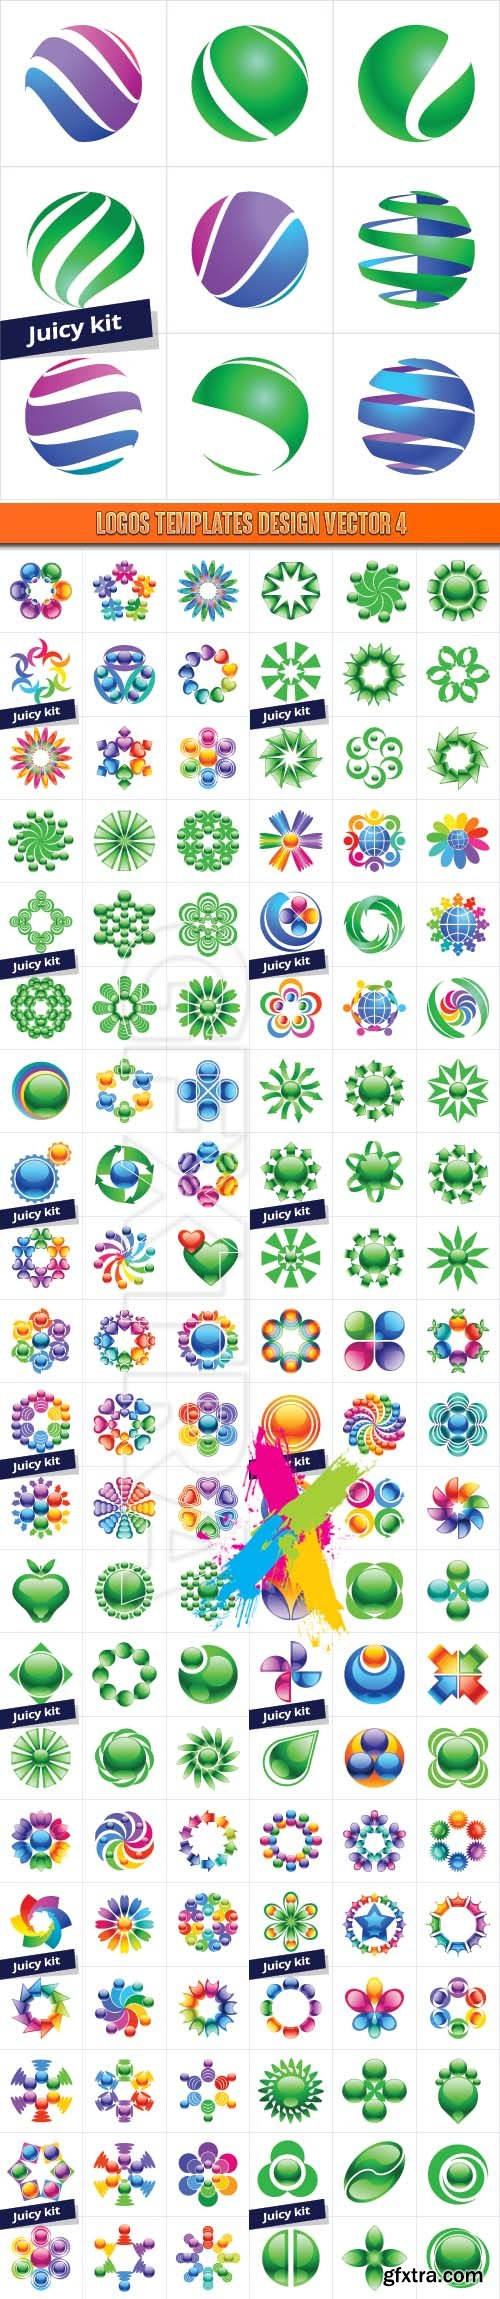 Logos Templates Design Vector 4